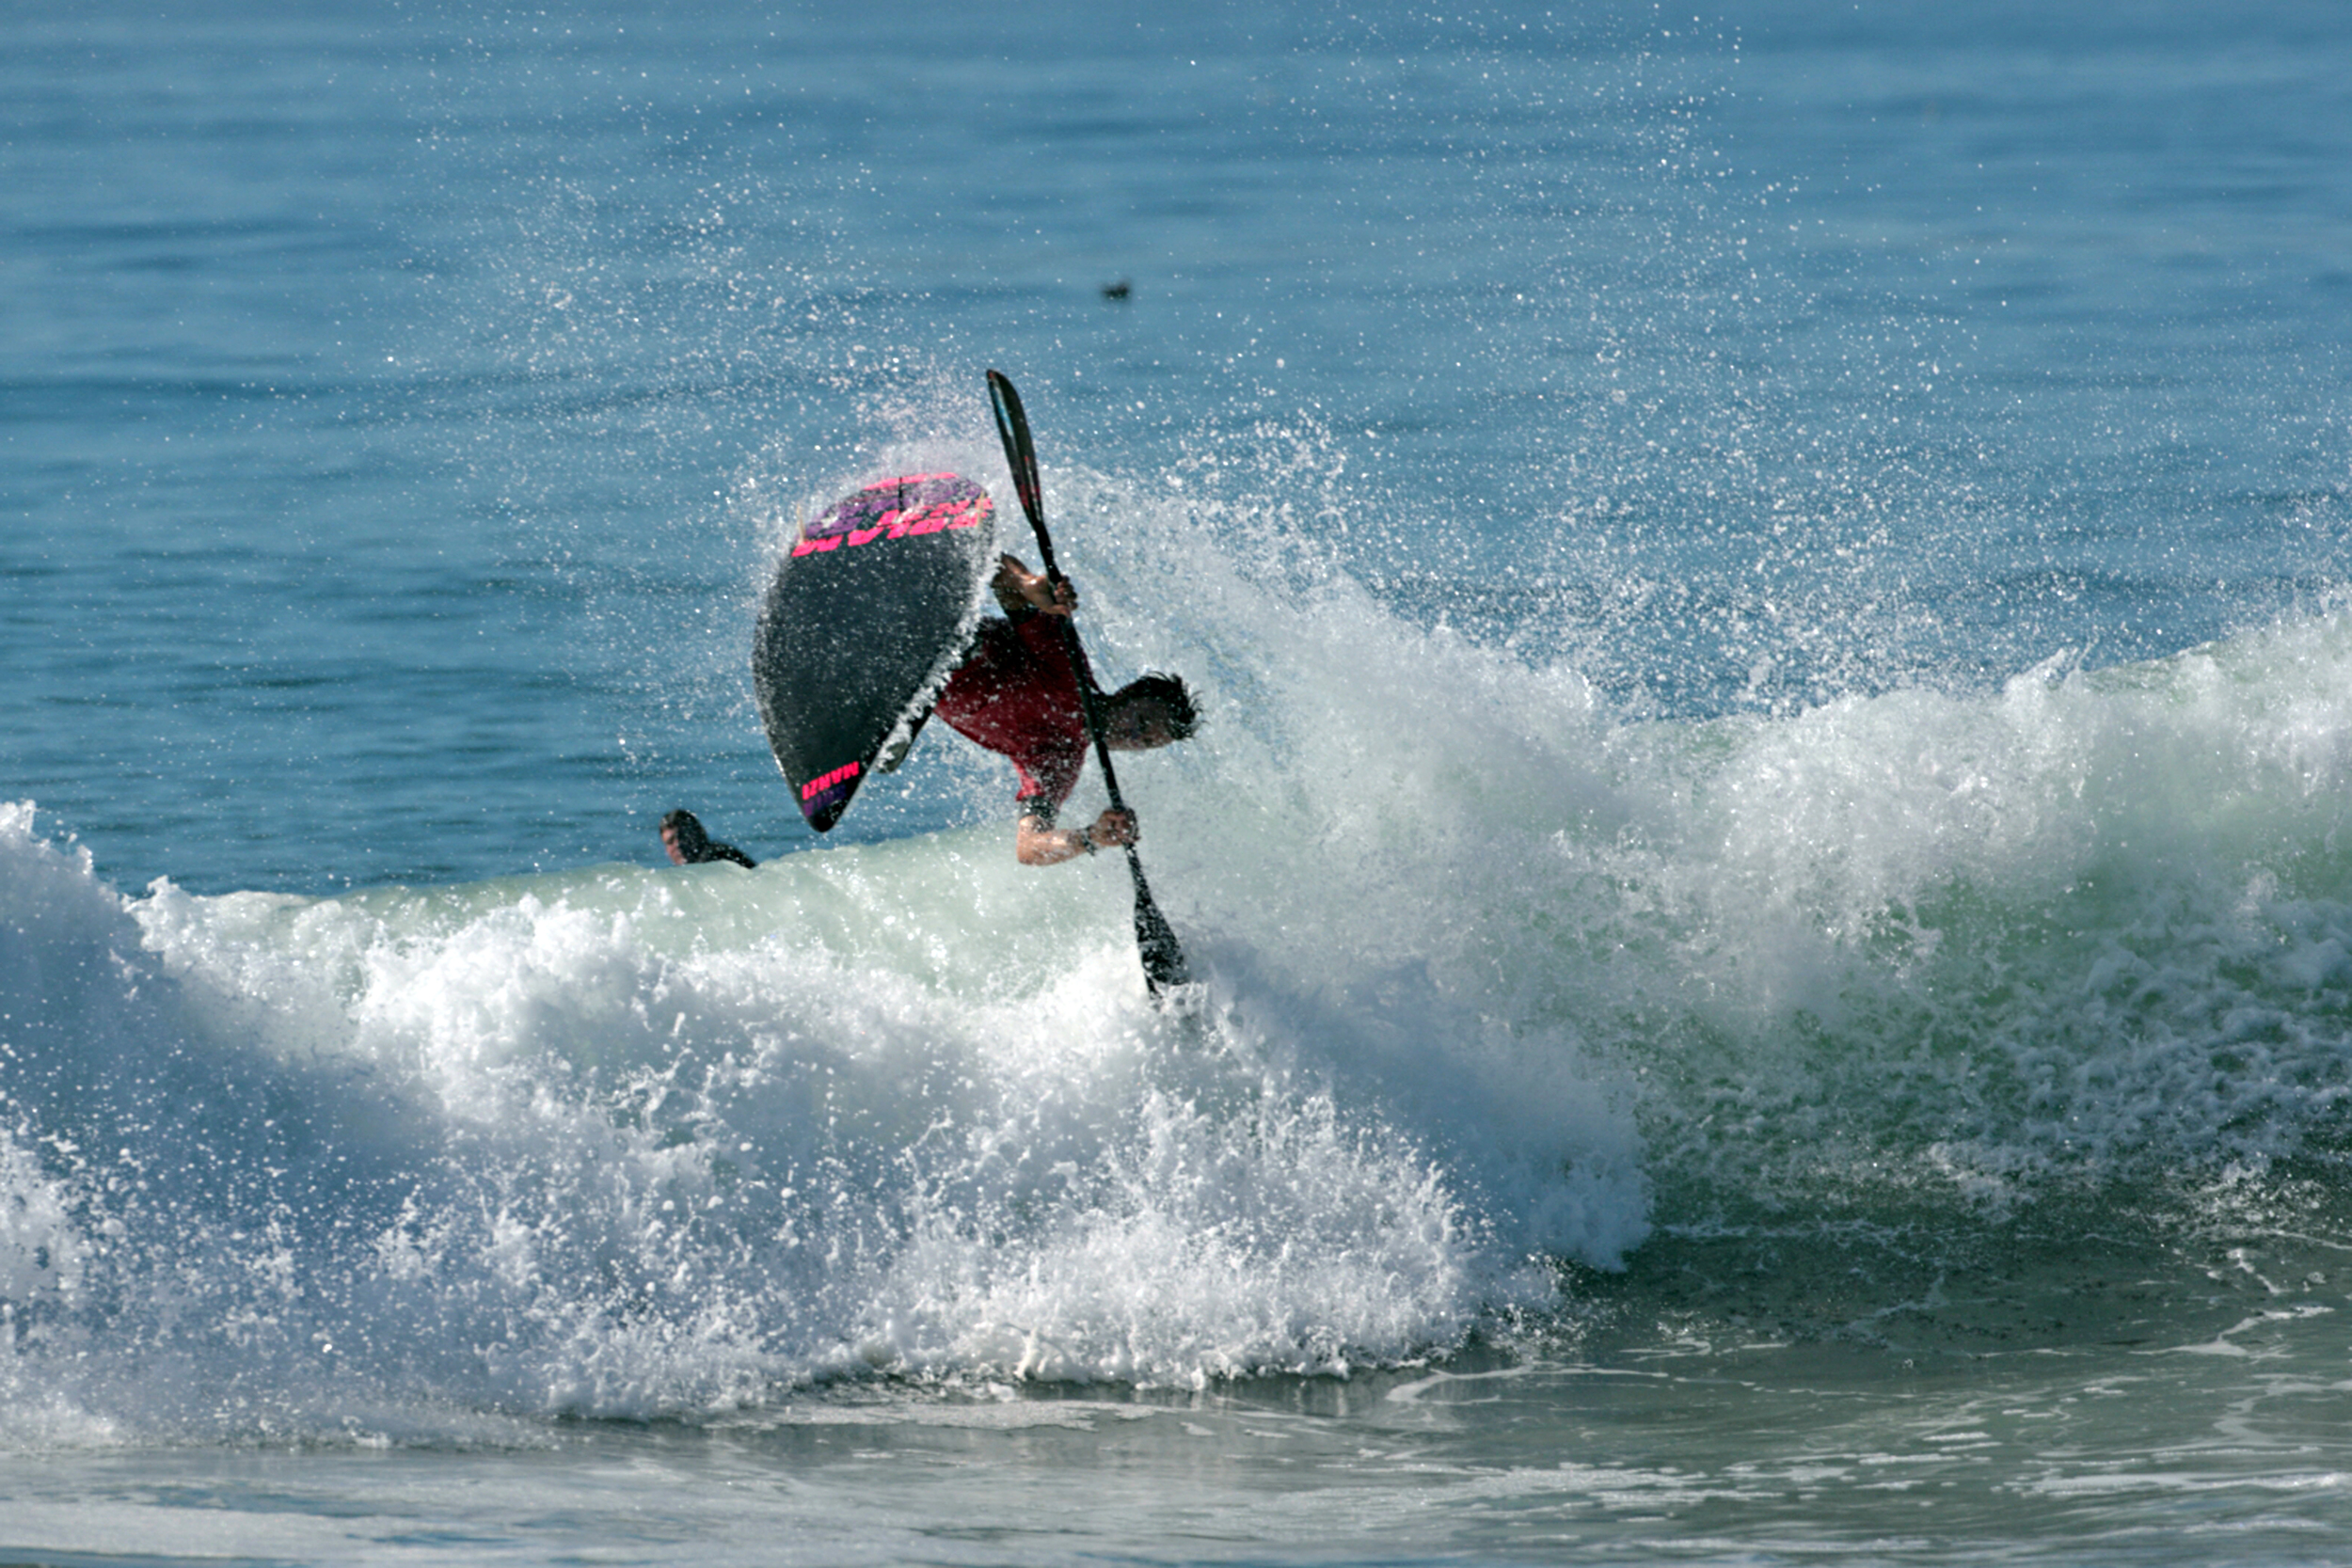 Ventura Paddle Surfing Championships - Saturday October 10th 2015 (click on pic to see pics and trophy ceremony video)